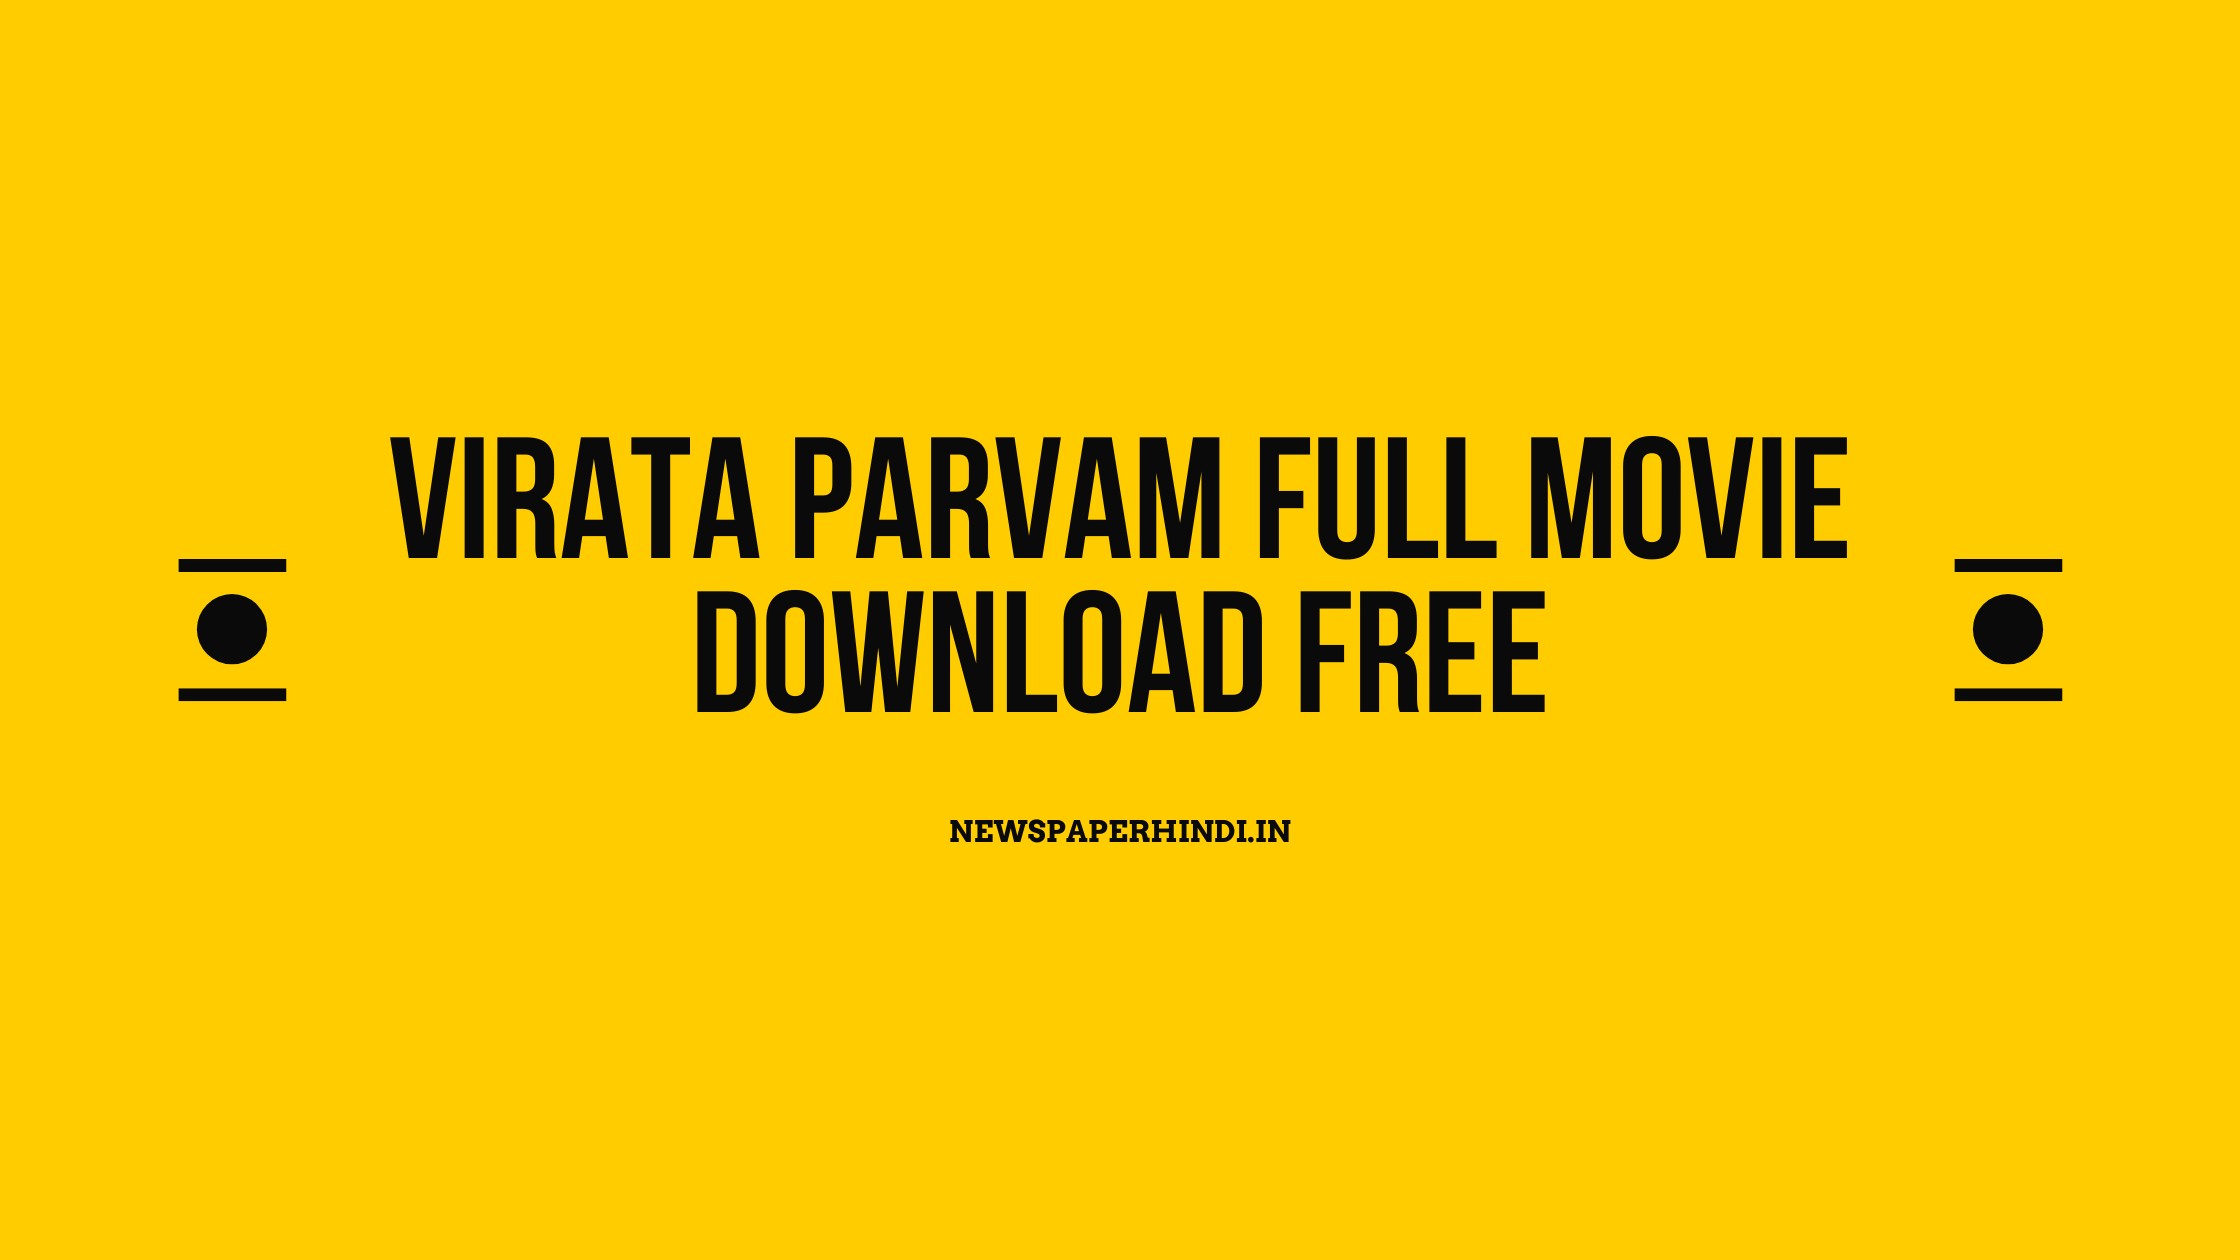 Virata parvam full movie download free